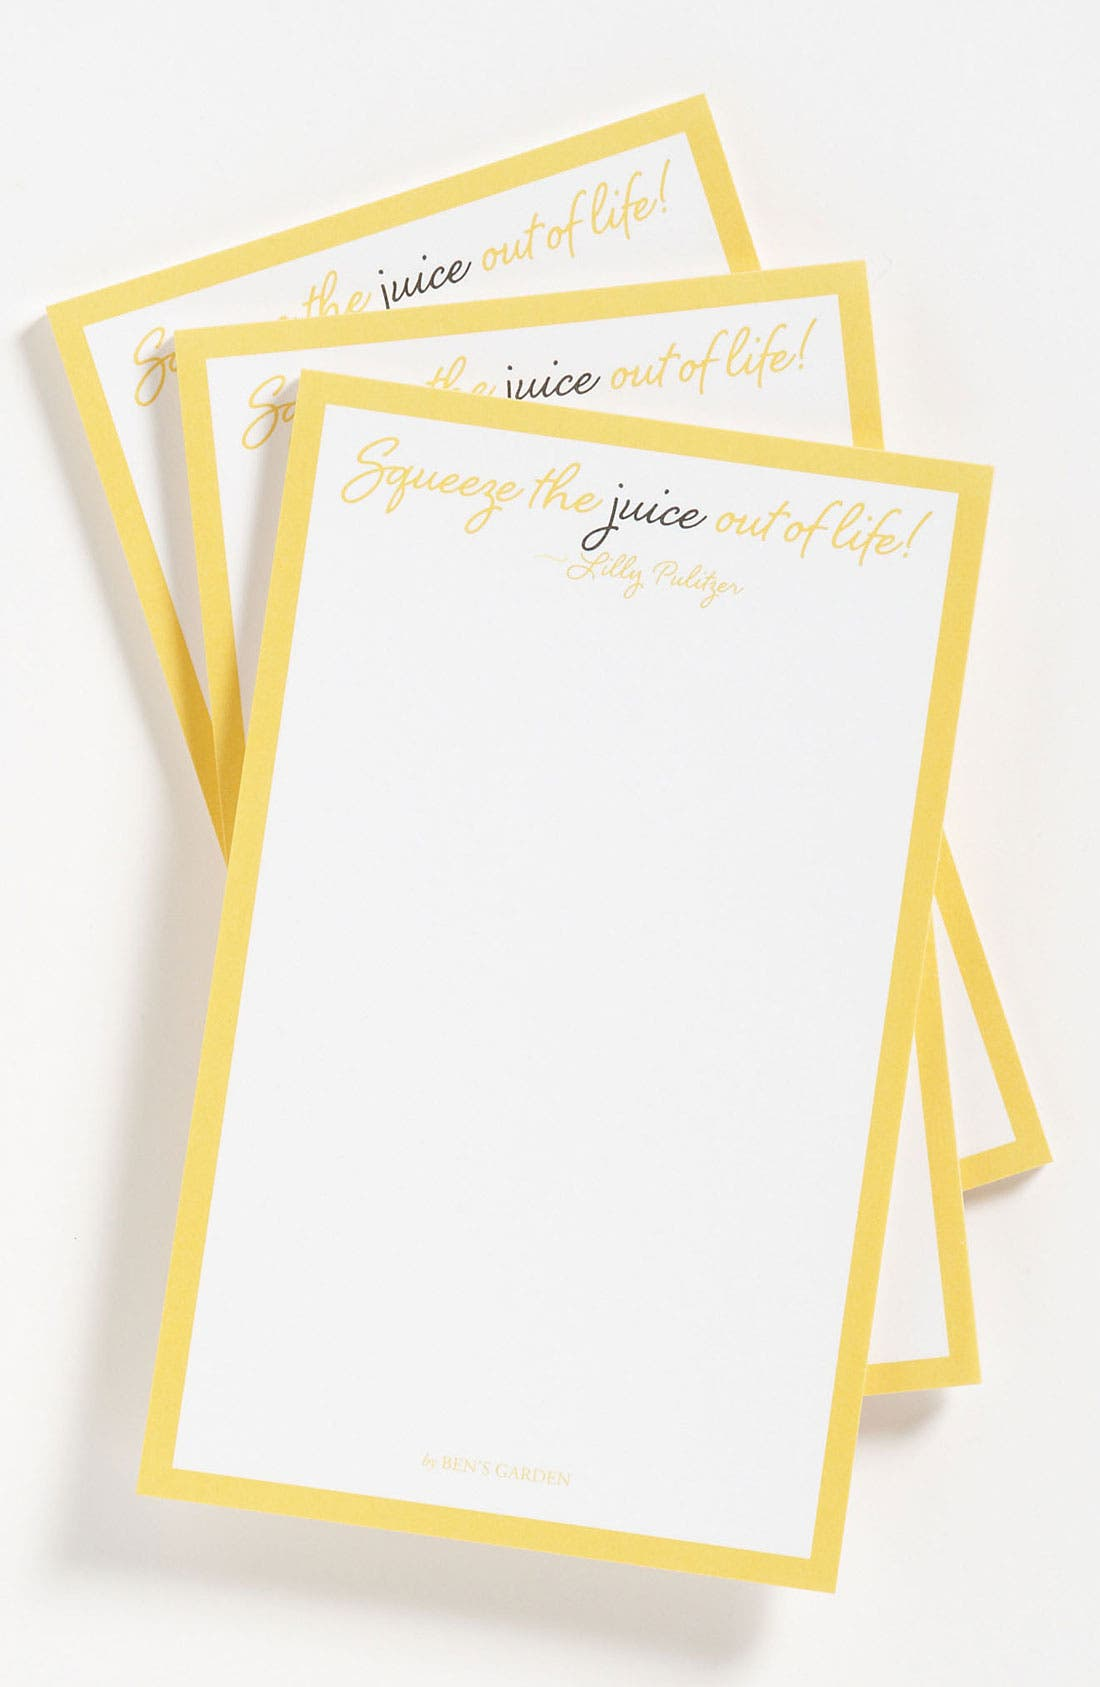 Alternate Image 1 Selected - Ben's Garden 'Squeeze the Juice Out of Life' Notepads (3-Pack)